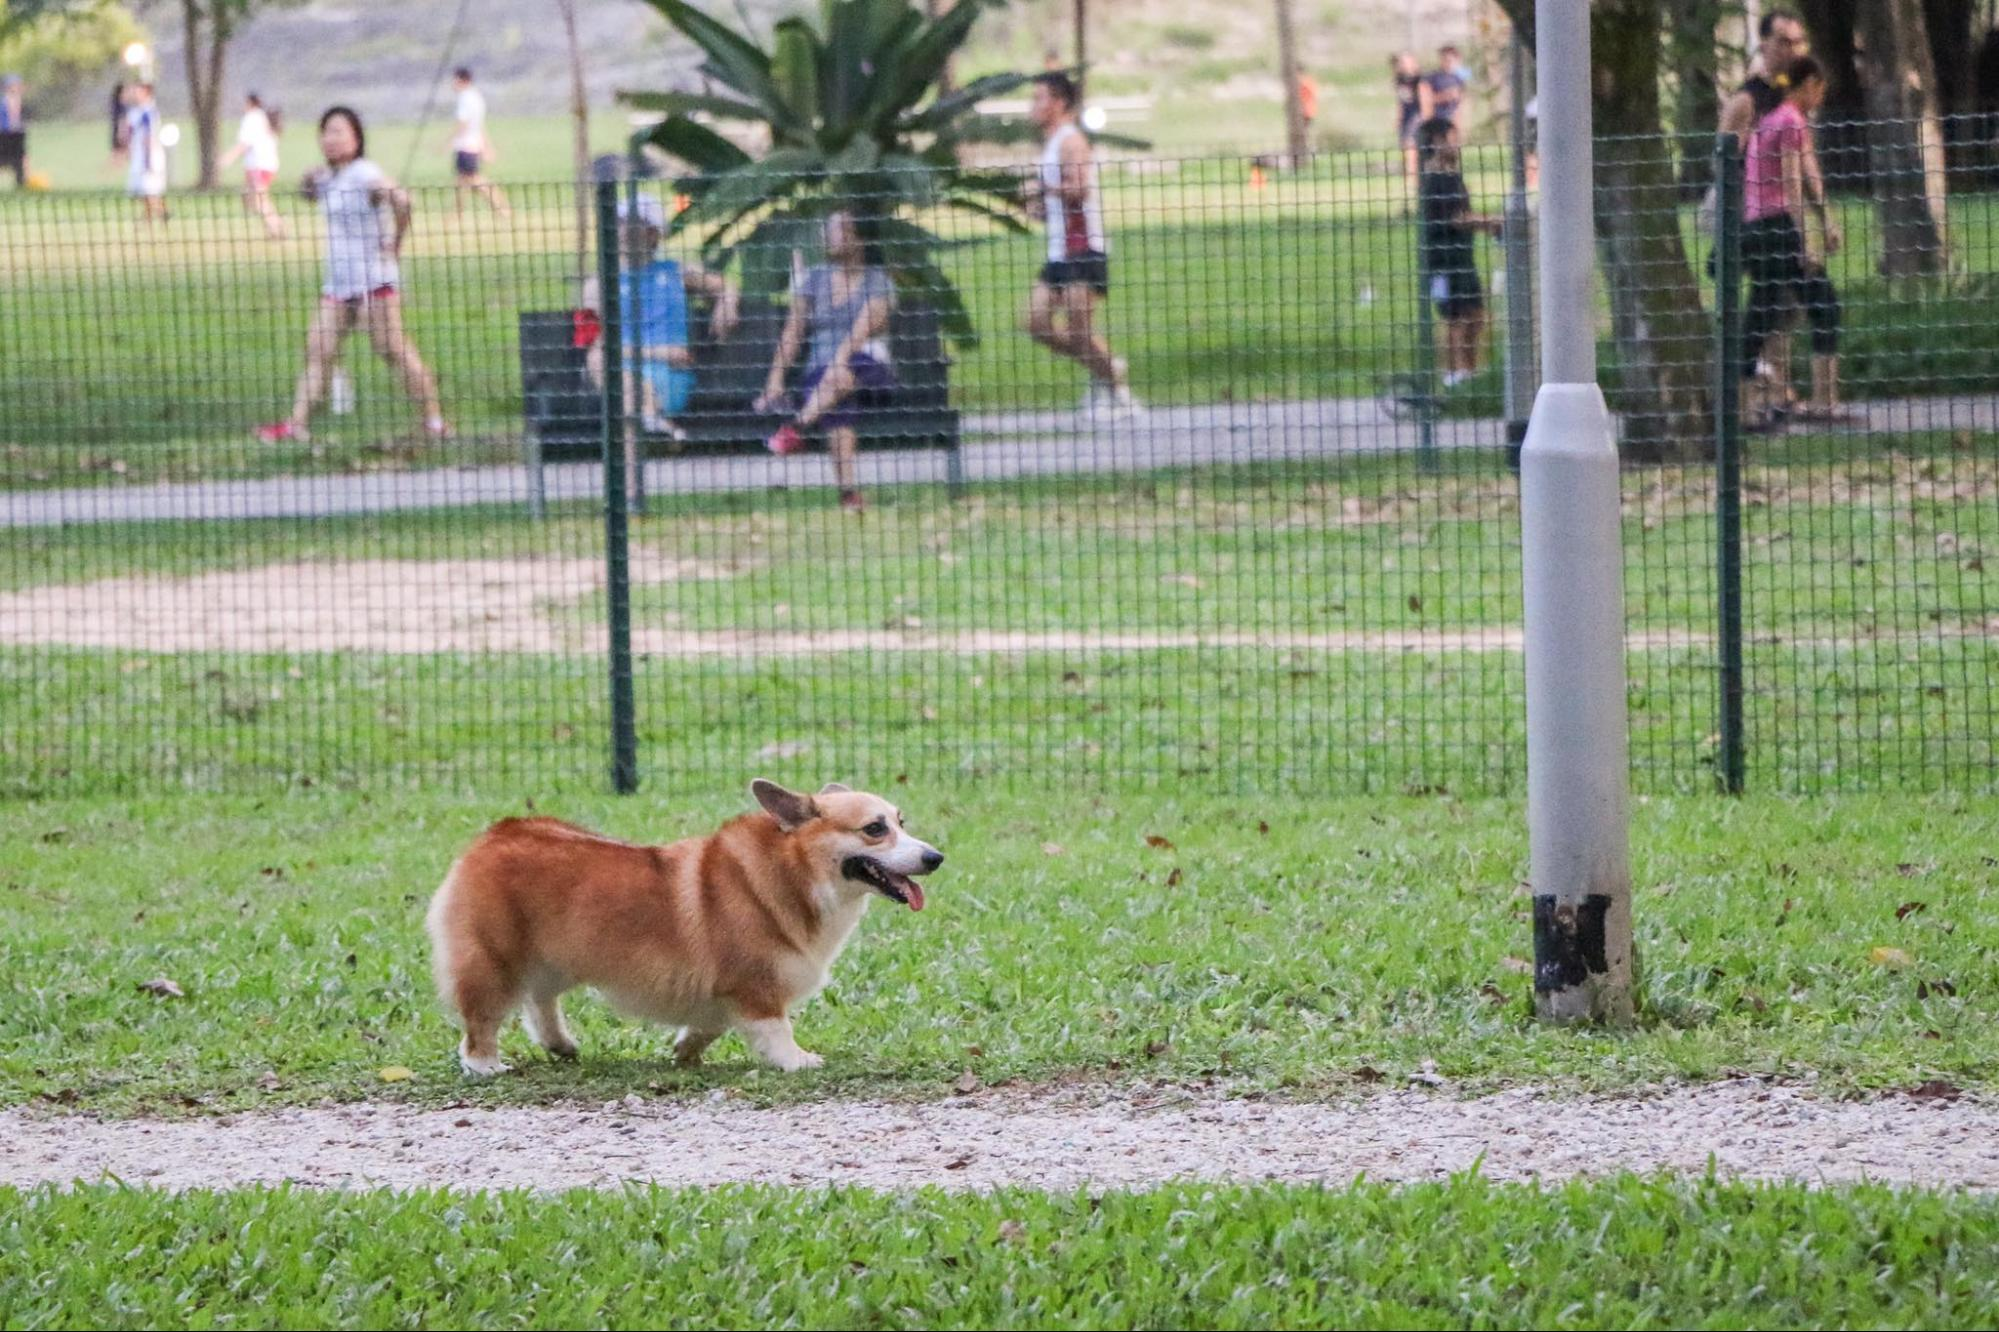 Dog runs Singapore - bishan park dog run corgi